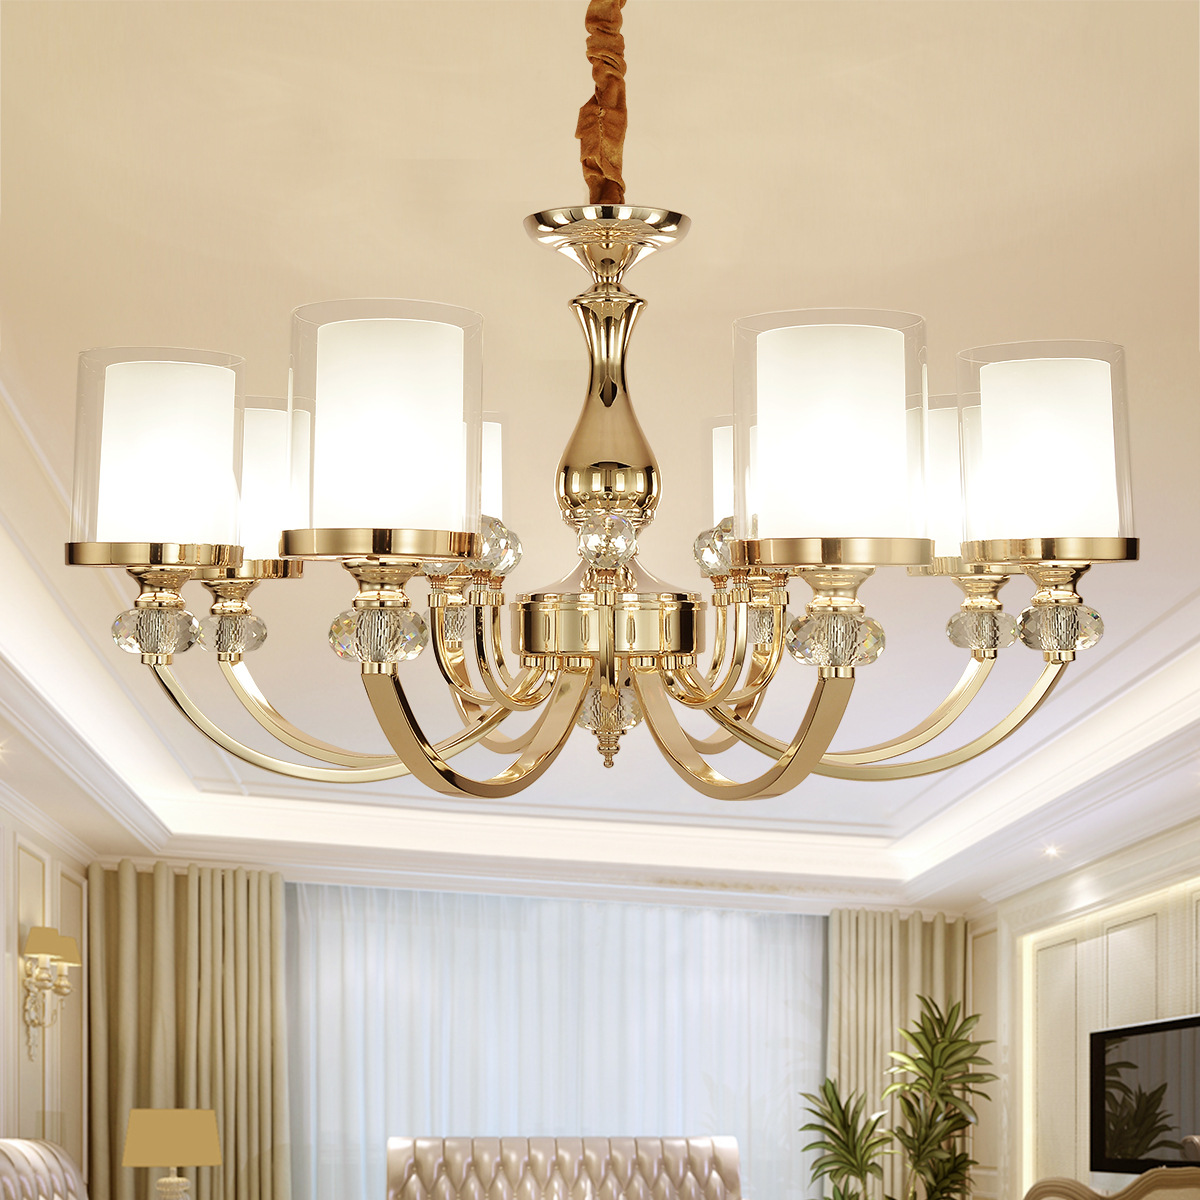 (EICEO) Living Room Lamp Crystal Chandelier European Modern Minimalist Bedroom Lighting Restaurant Atmosphere LED Pendant Lamps modern crystal chandelier led hanging lighting european style glass chandeliers light for living dining room restaurant decor